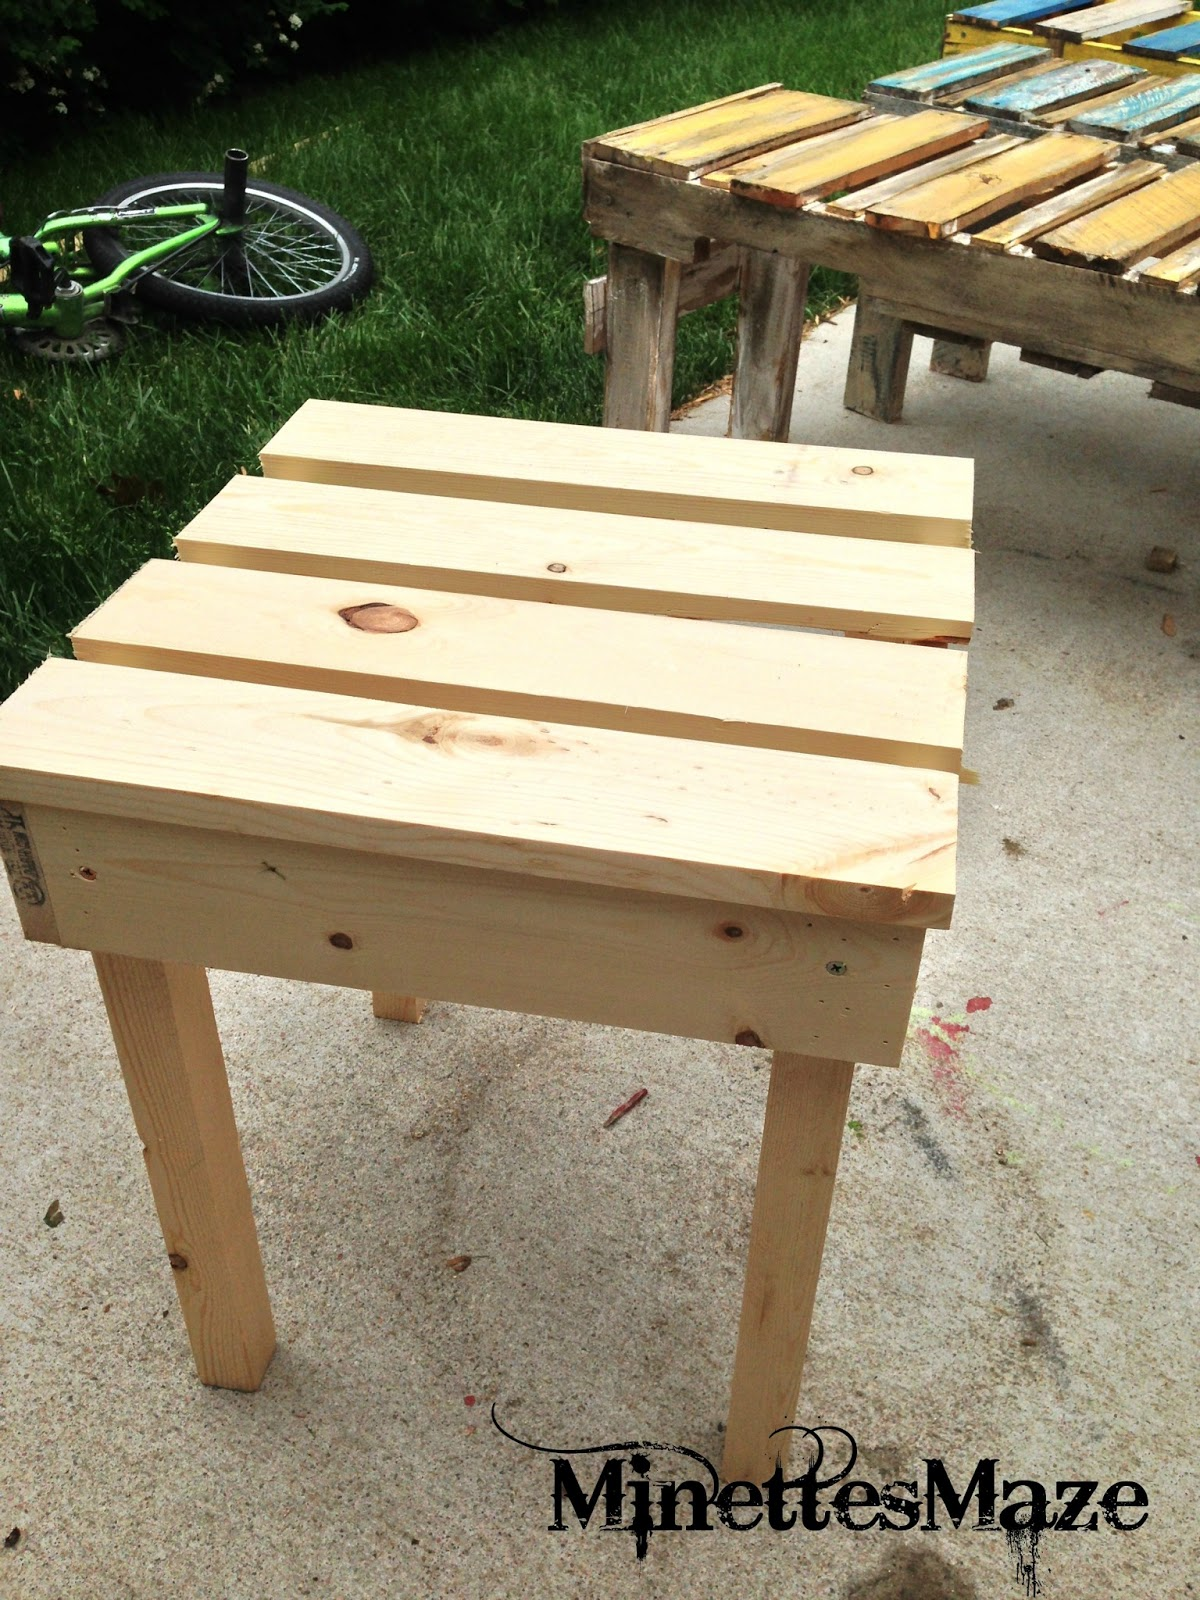 Minettesmaze Diy Patio Table